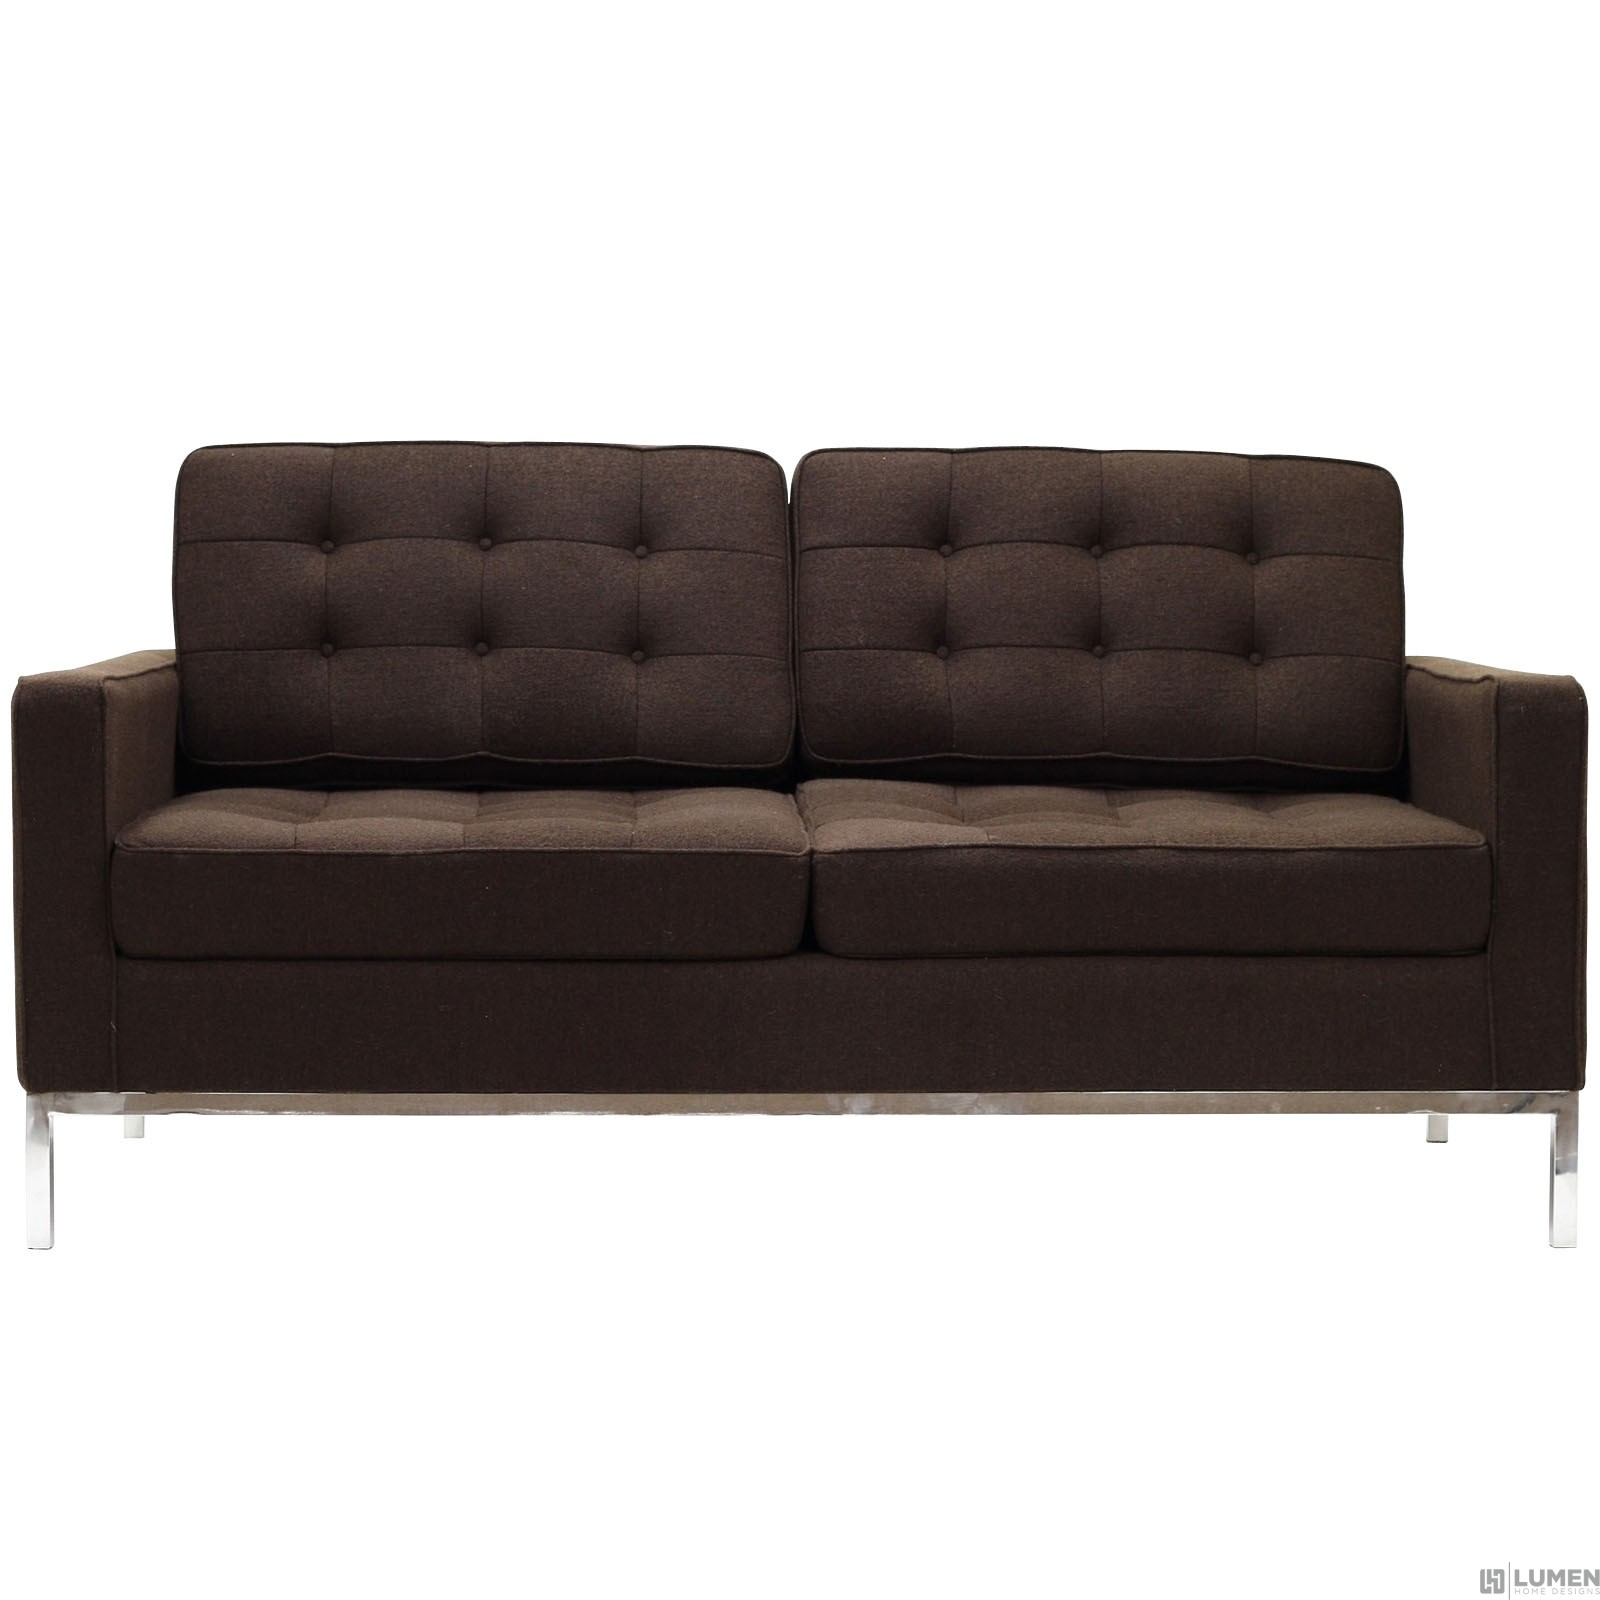 LHD-186-CHC-Loveseat